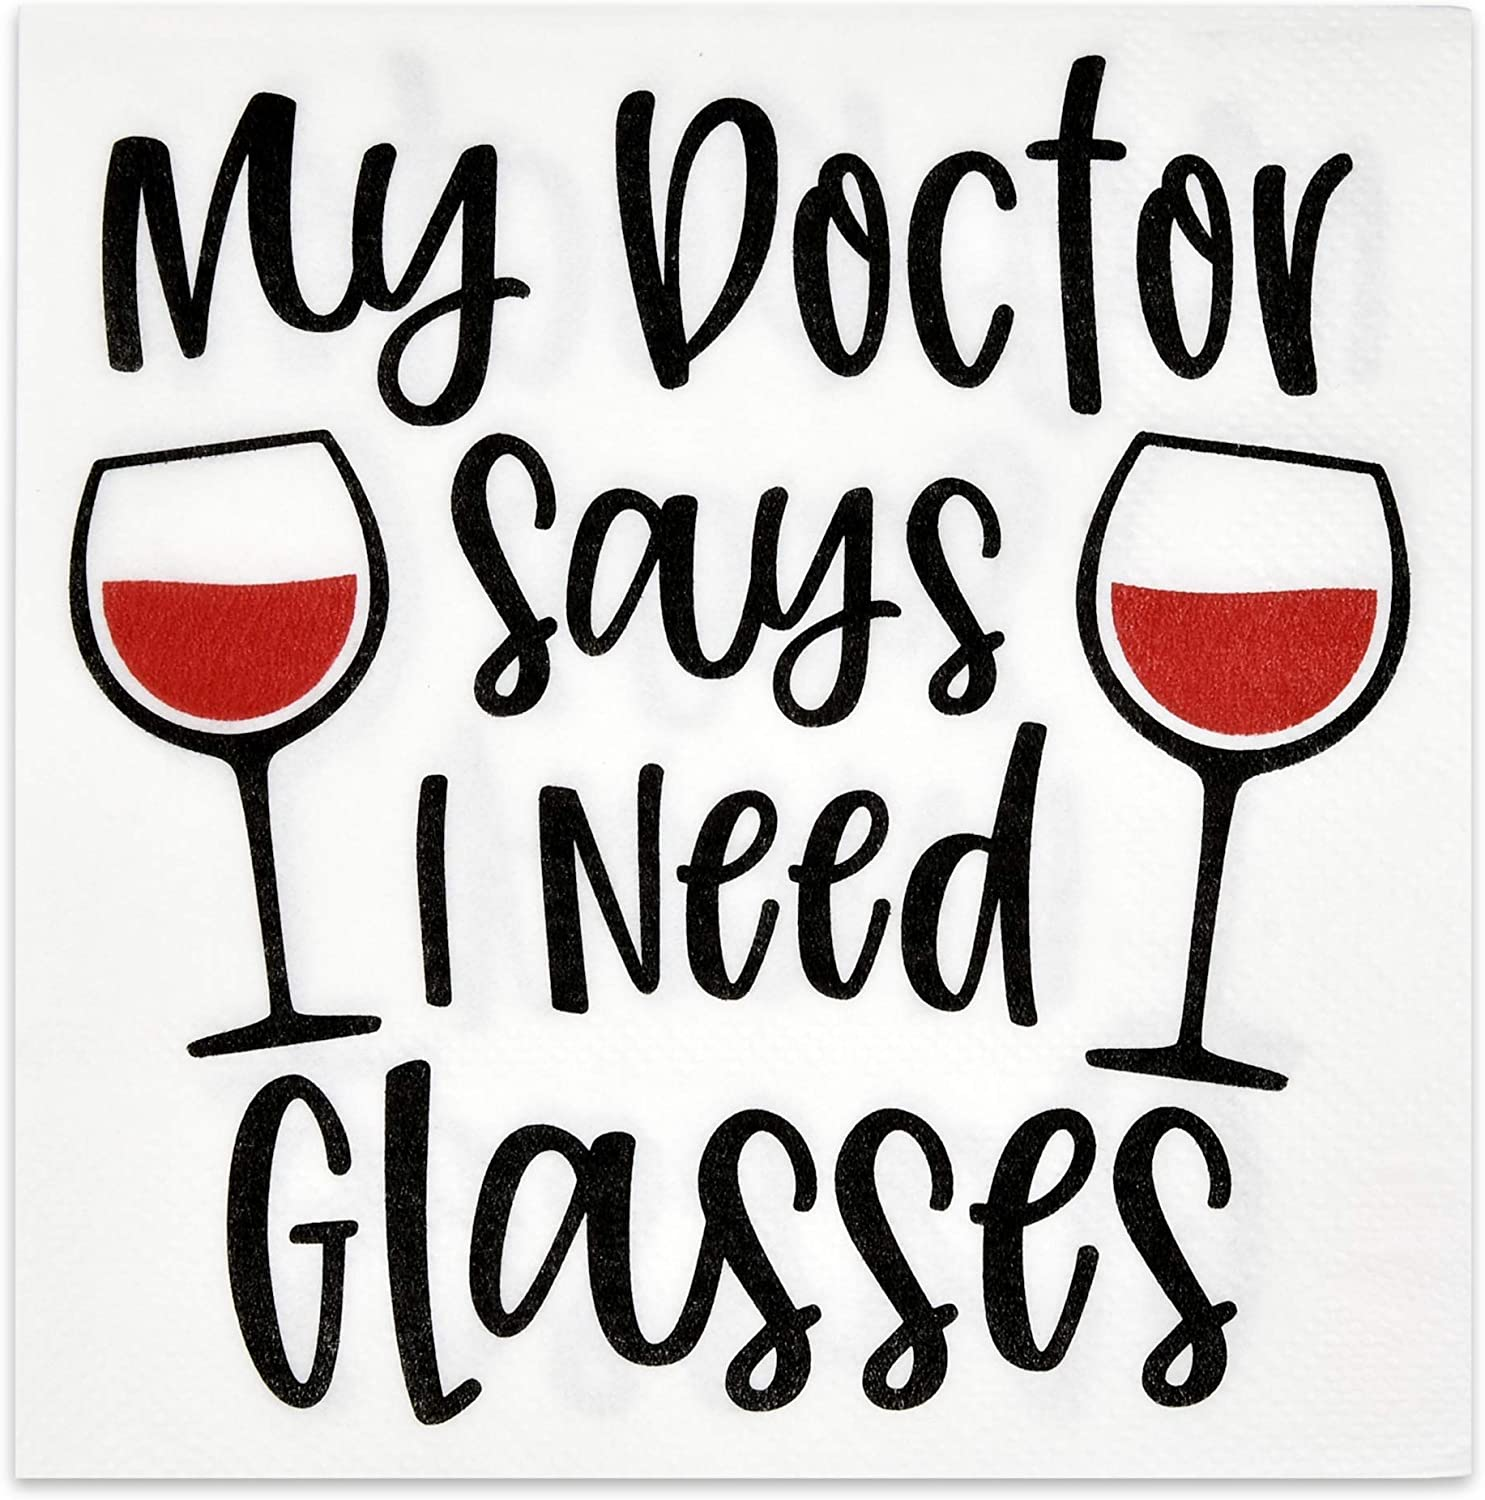 100 Wine Cocktail Napkins Funny My Doctor Says I Need Glasses 3 Ply Disposable Paper Beverage Dessert Napkin with Doc Saying Glasses Design For Holiday Wedding Bridal Party Supplies Decorations